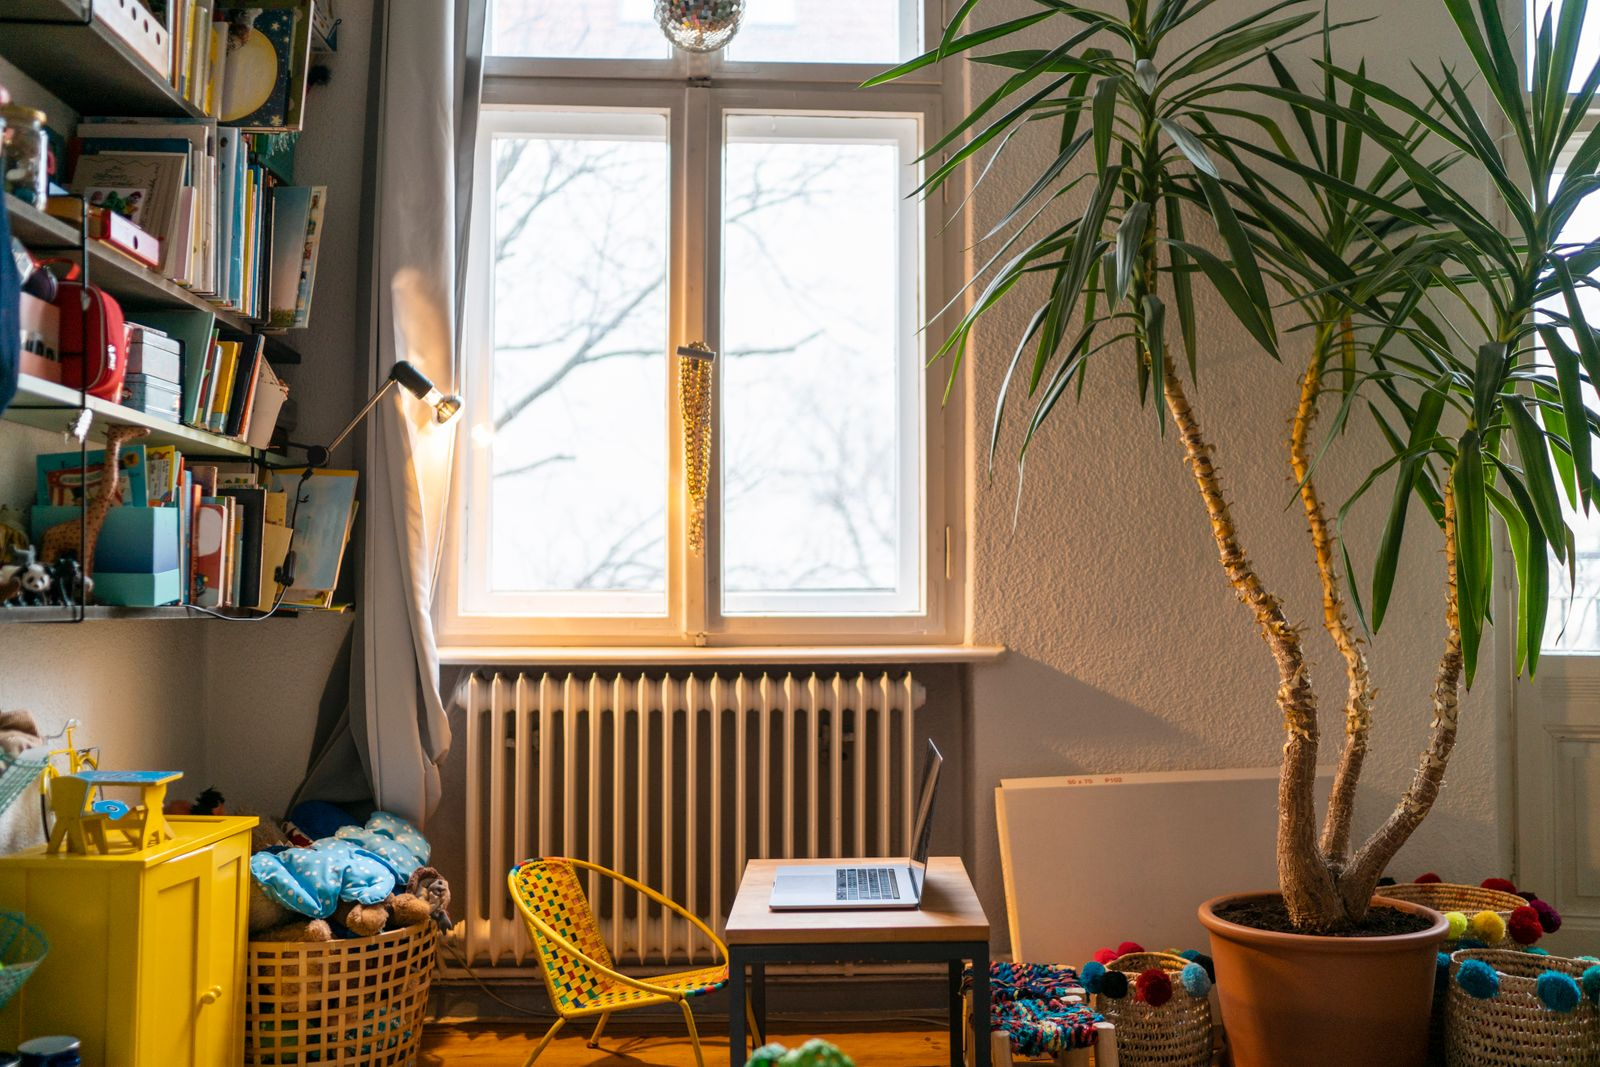 Laptop in children's room at home